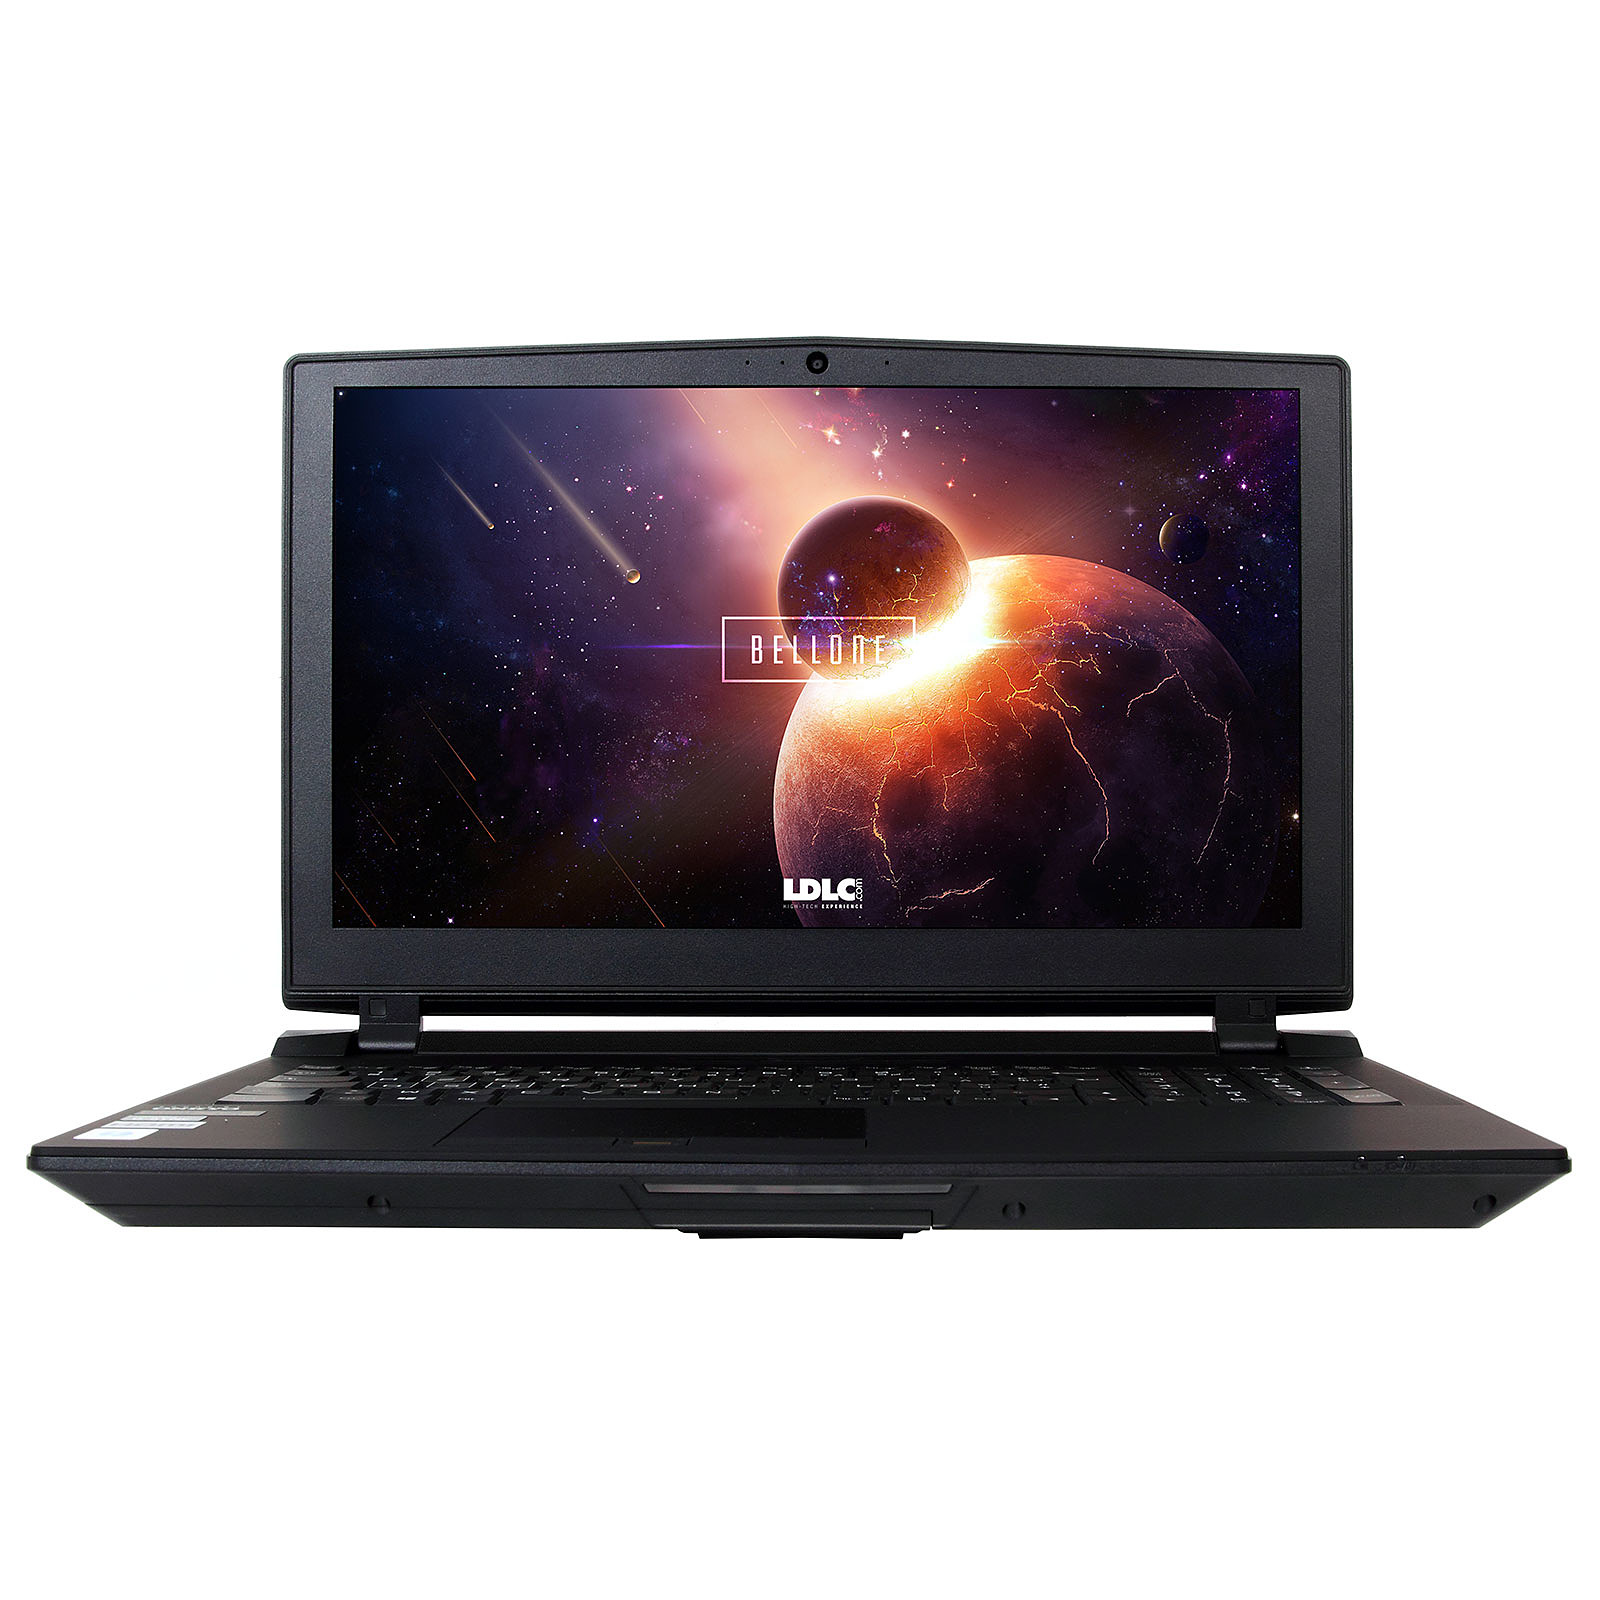 LDLC Bellone X97A-I7-32-H20S4-P10